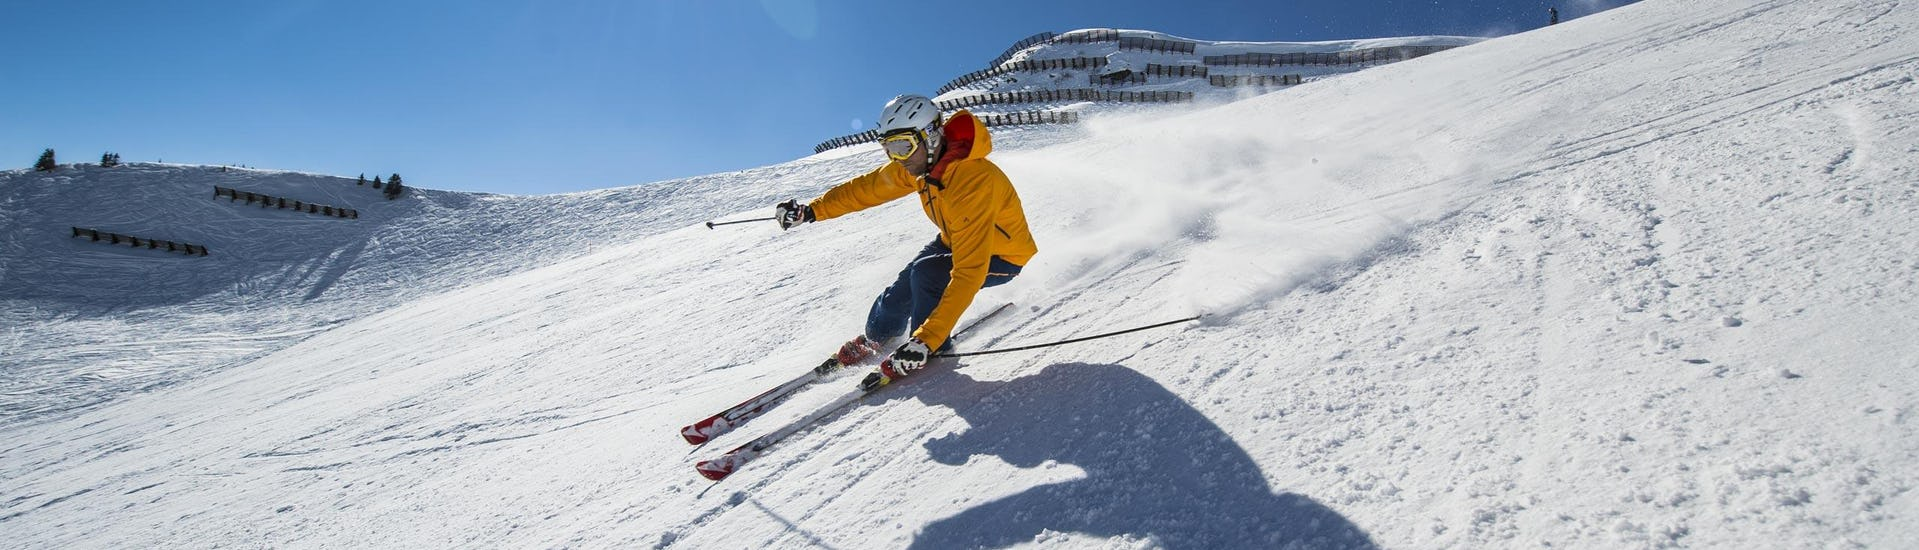 Ski Lessons for Adults - All Levels: A skier is skiing down a sunny ski slope while participating in an activity offered by ESKIMOS Ski & Snowboard School  Saas-Fee.